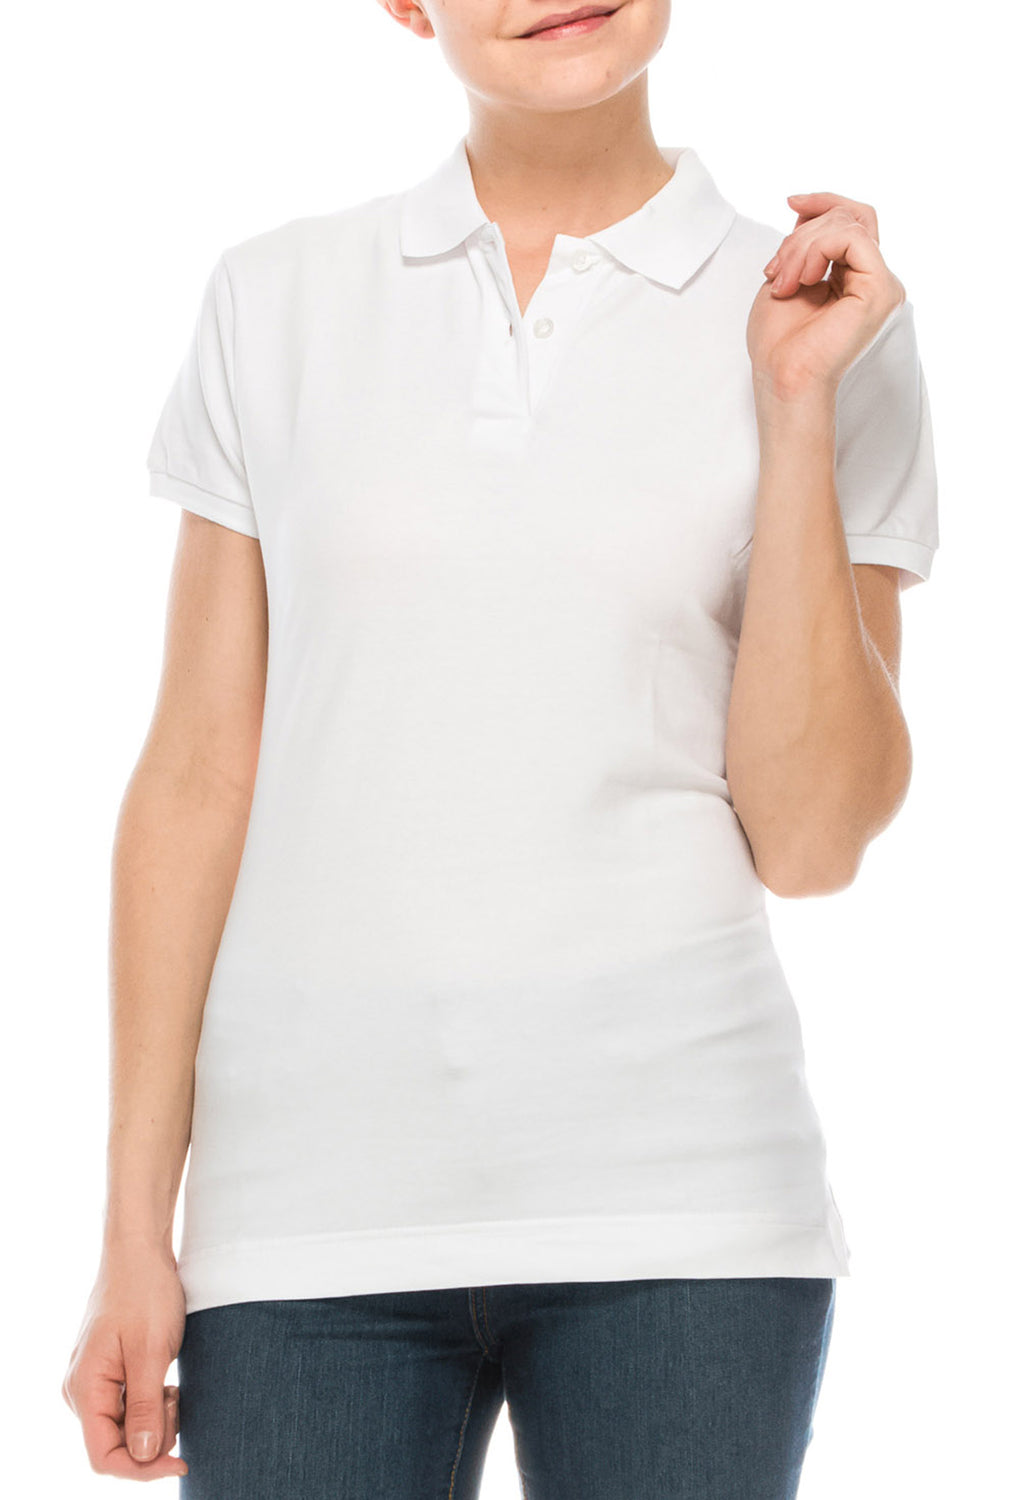 Girls Polo (Junior)-93J - Pro 5 Apparel